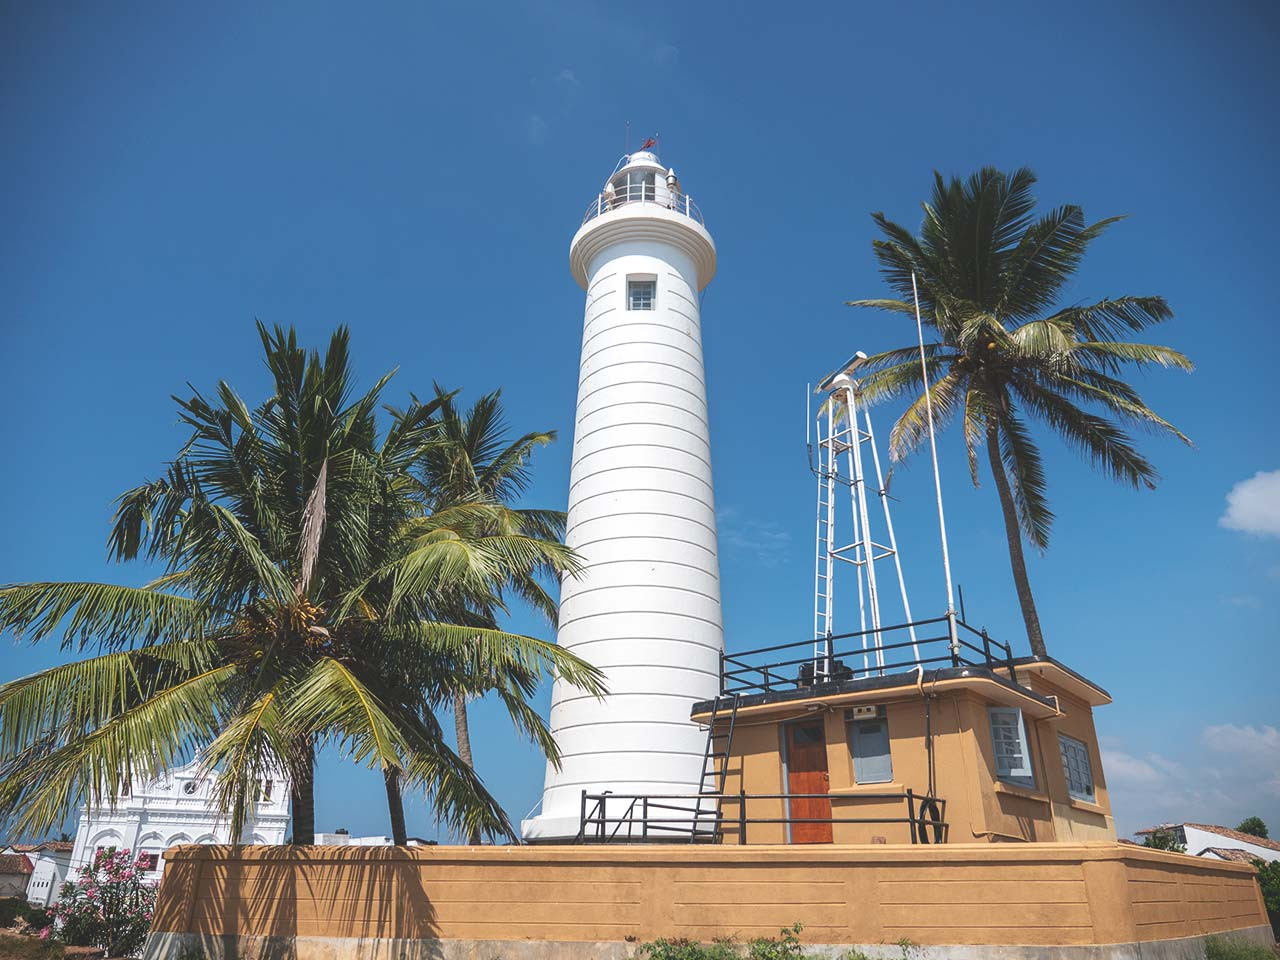 Leuchtturm beim Galle Fort in Sri Lanka